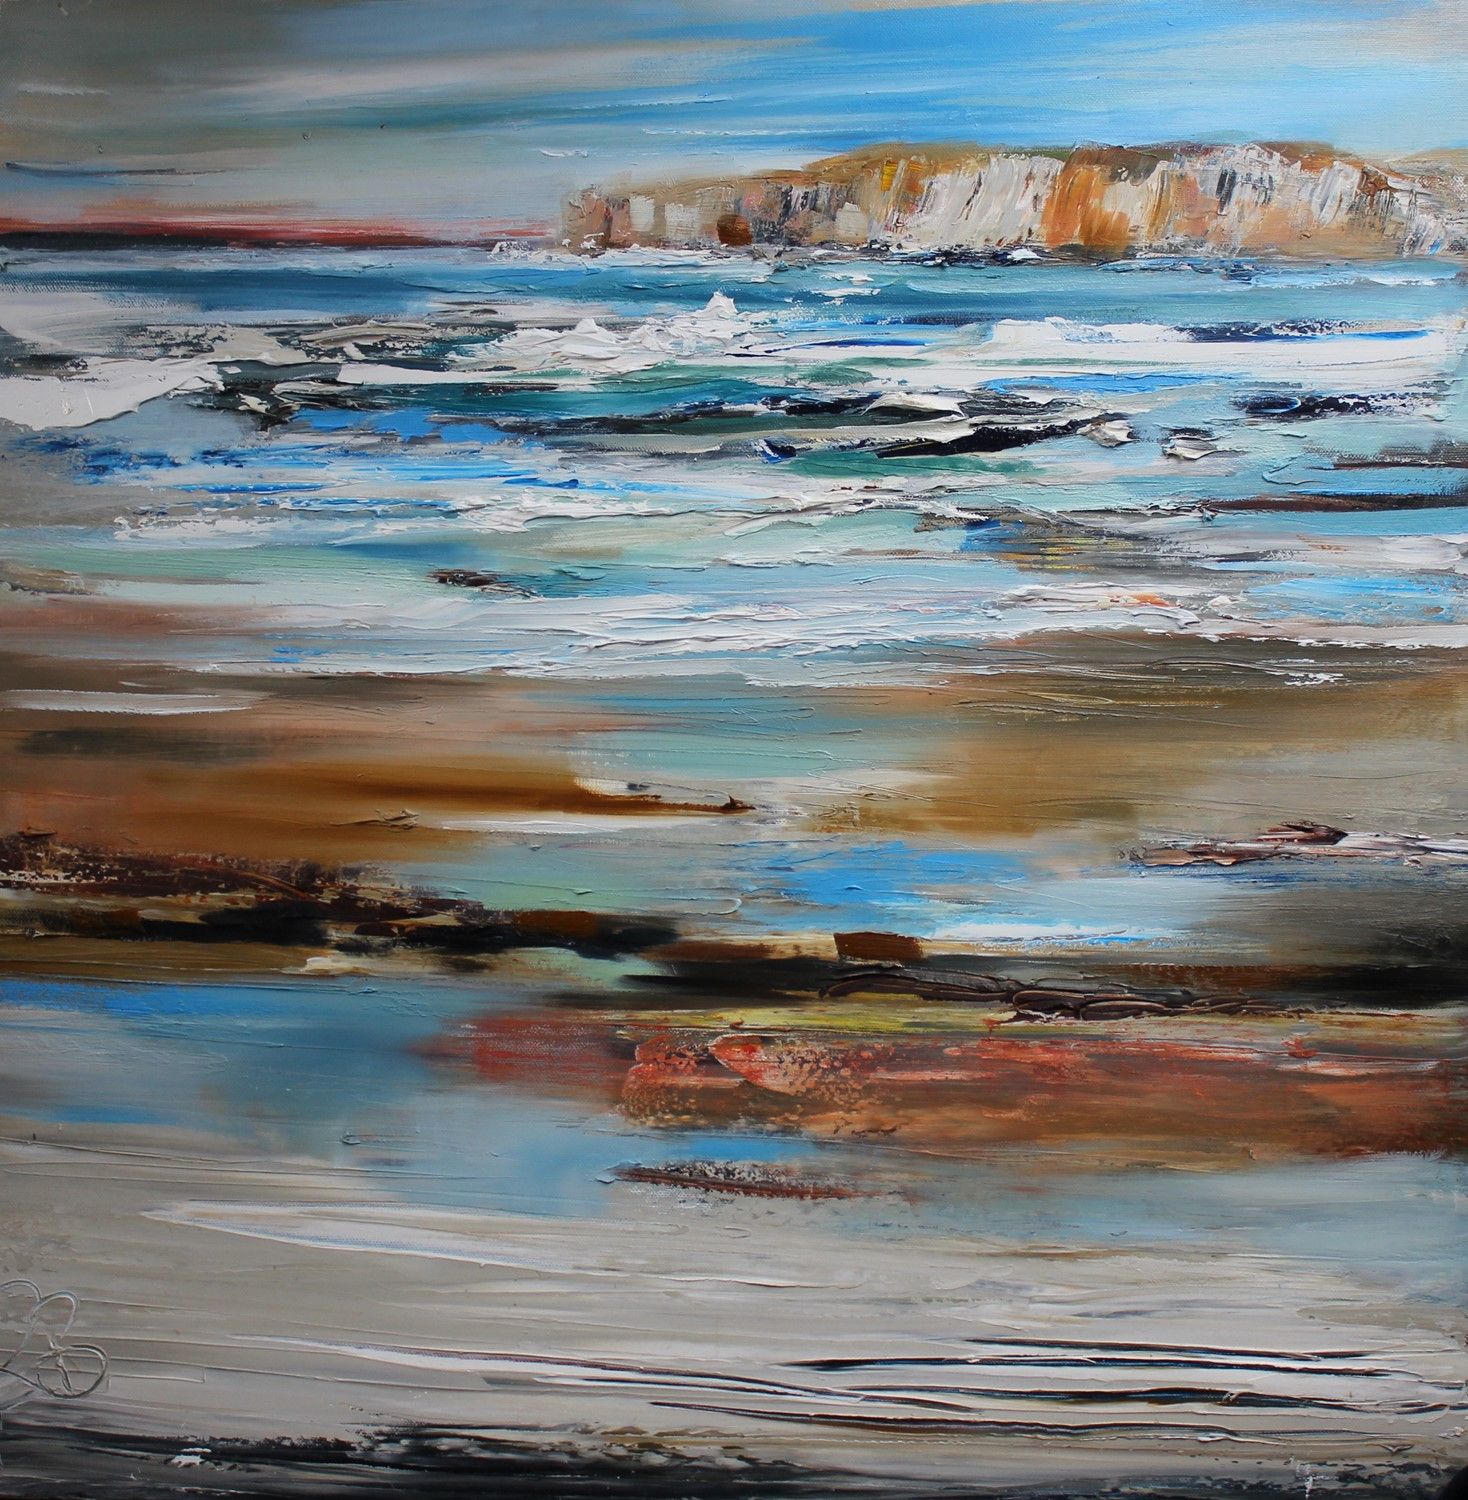 'High Cliffs and Aqua Seas ' by artist Rosanne Barr